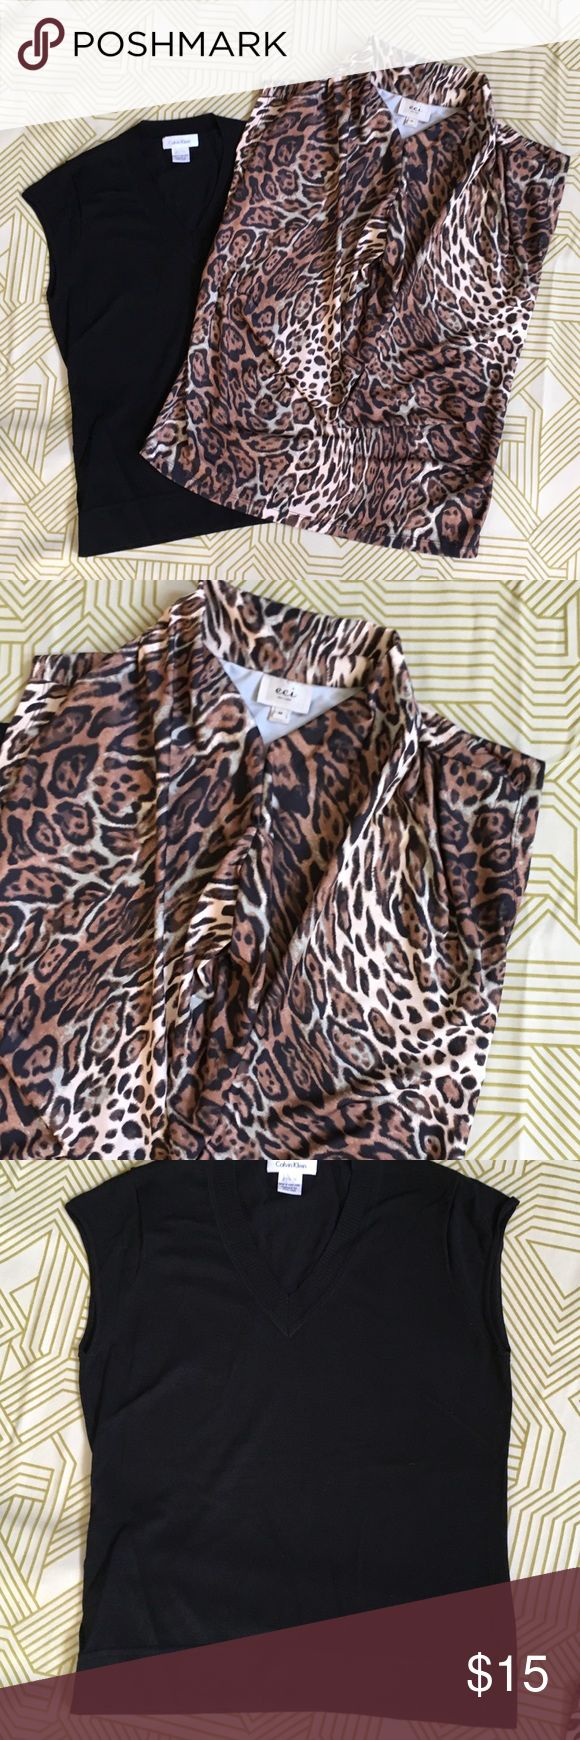 Bundle 2 Layering Tops Size Med Calvin Klein & eci Calvin Klein cap sleeve v neck is great under a jacket. Has a nice slimming fit. Size Medium. Eli sleeveless animal print tank with a great flouncy v neck. Great with a black pencil skirt. Or belted with a wide leather belt. Both worn maybe a couple of times. Calvin Klein Tops Tank Tops